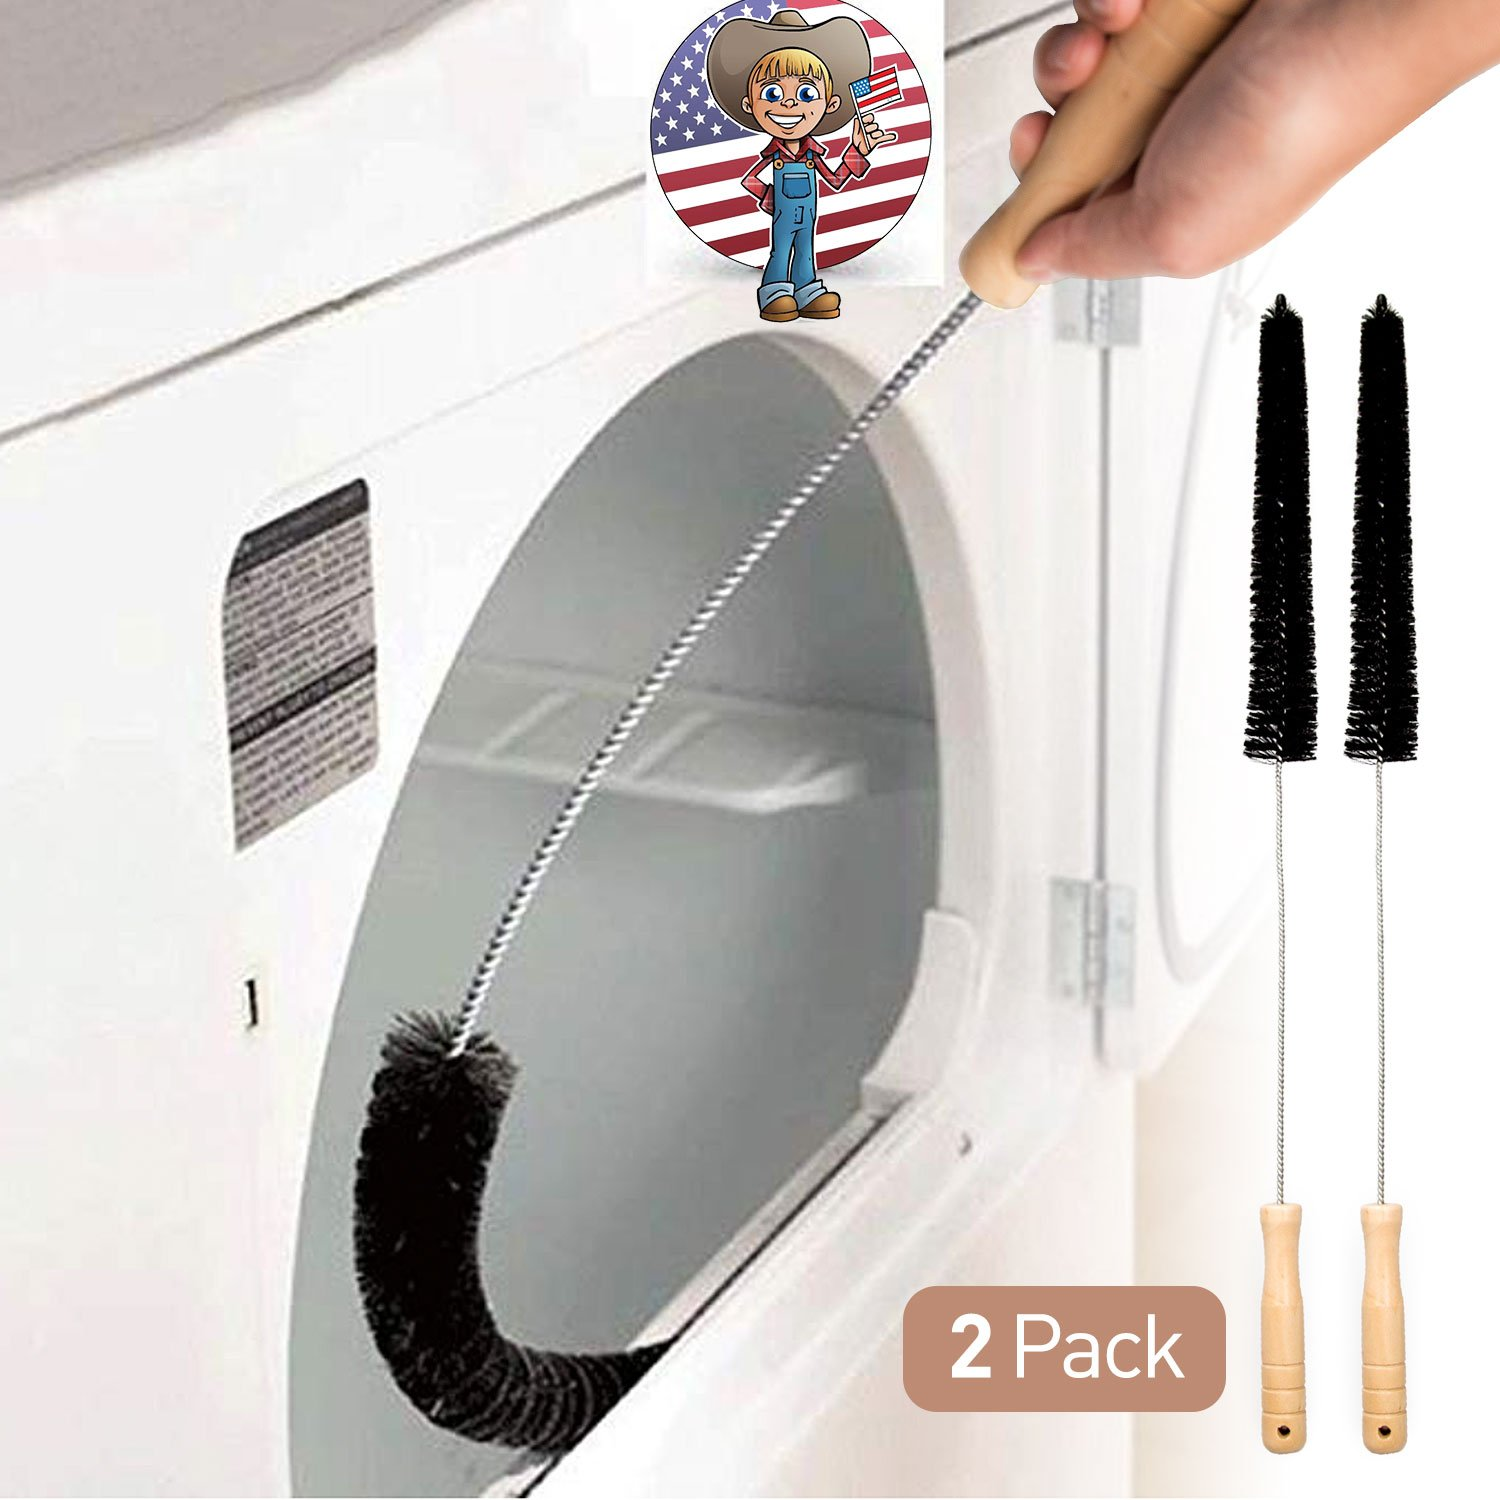 2 Pack Dryer Vent Cleaner Kit Dryer Lint Brush Vent Trap Cleaner Long Flexible Refrigerator Coil Brush Holikme